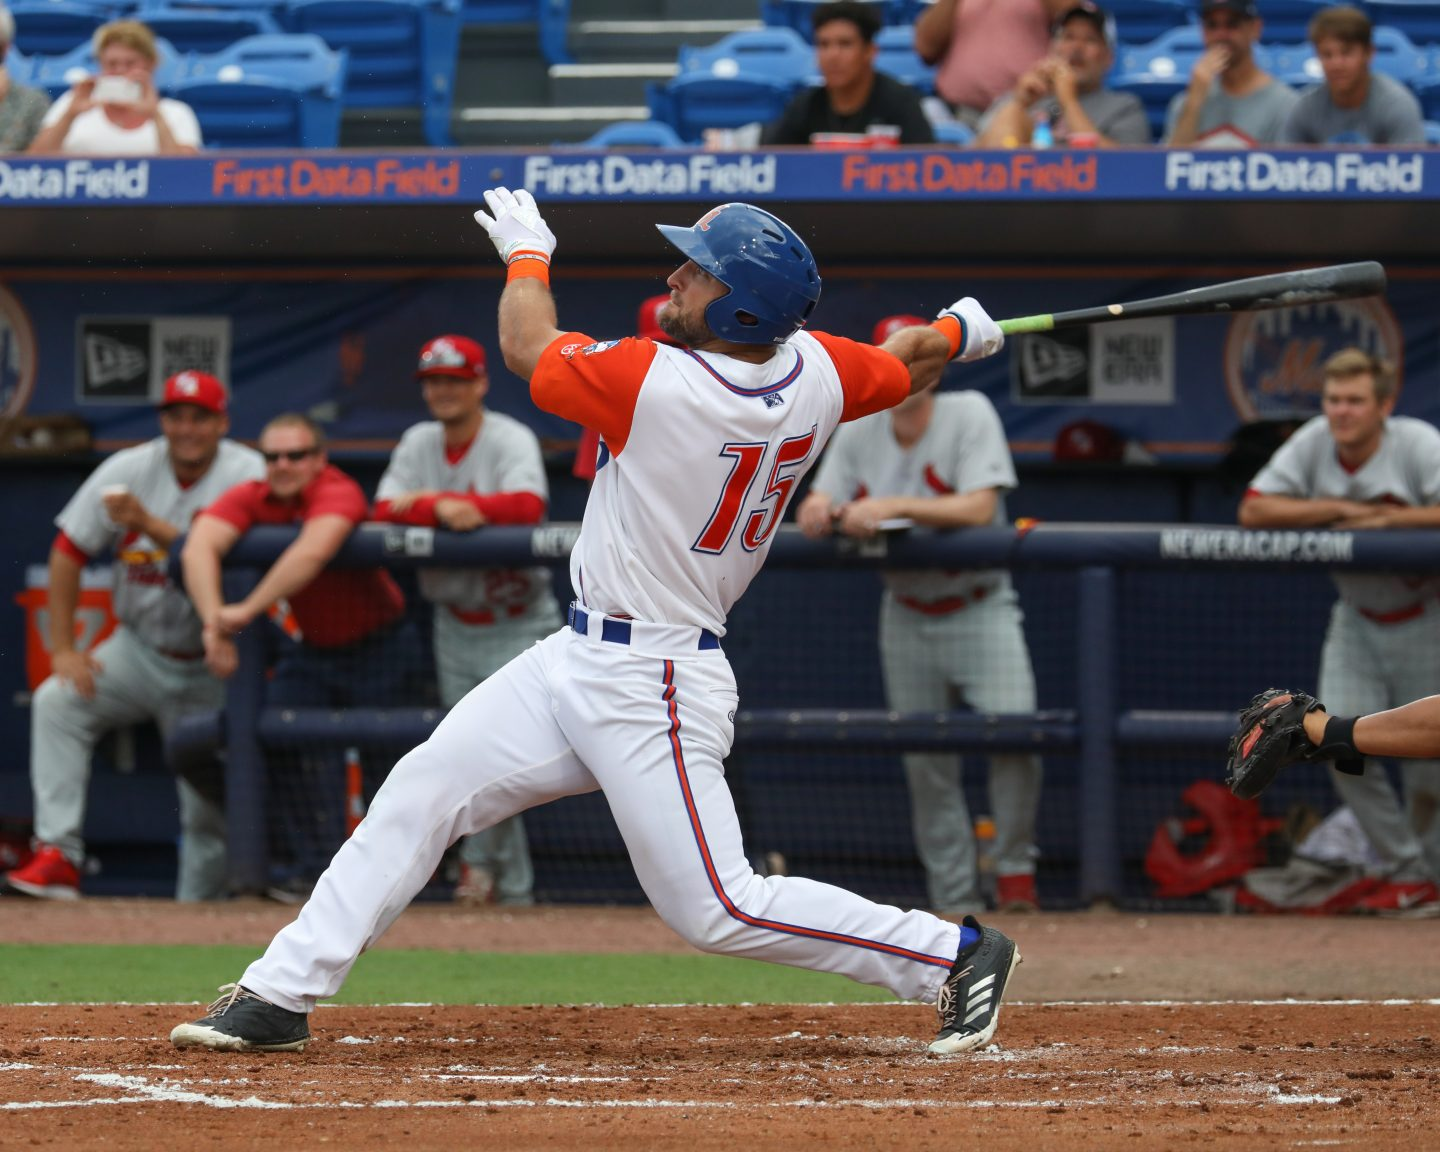 Tim Tebow in action playing baseball